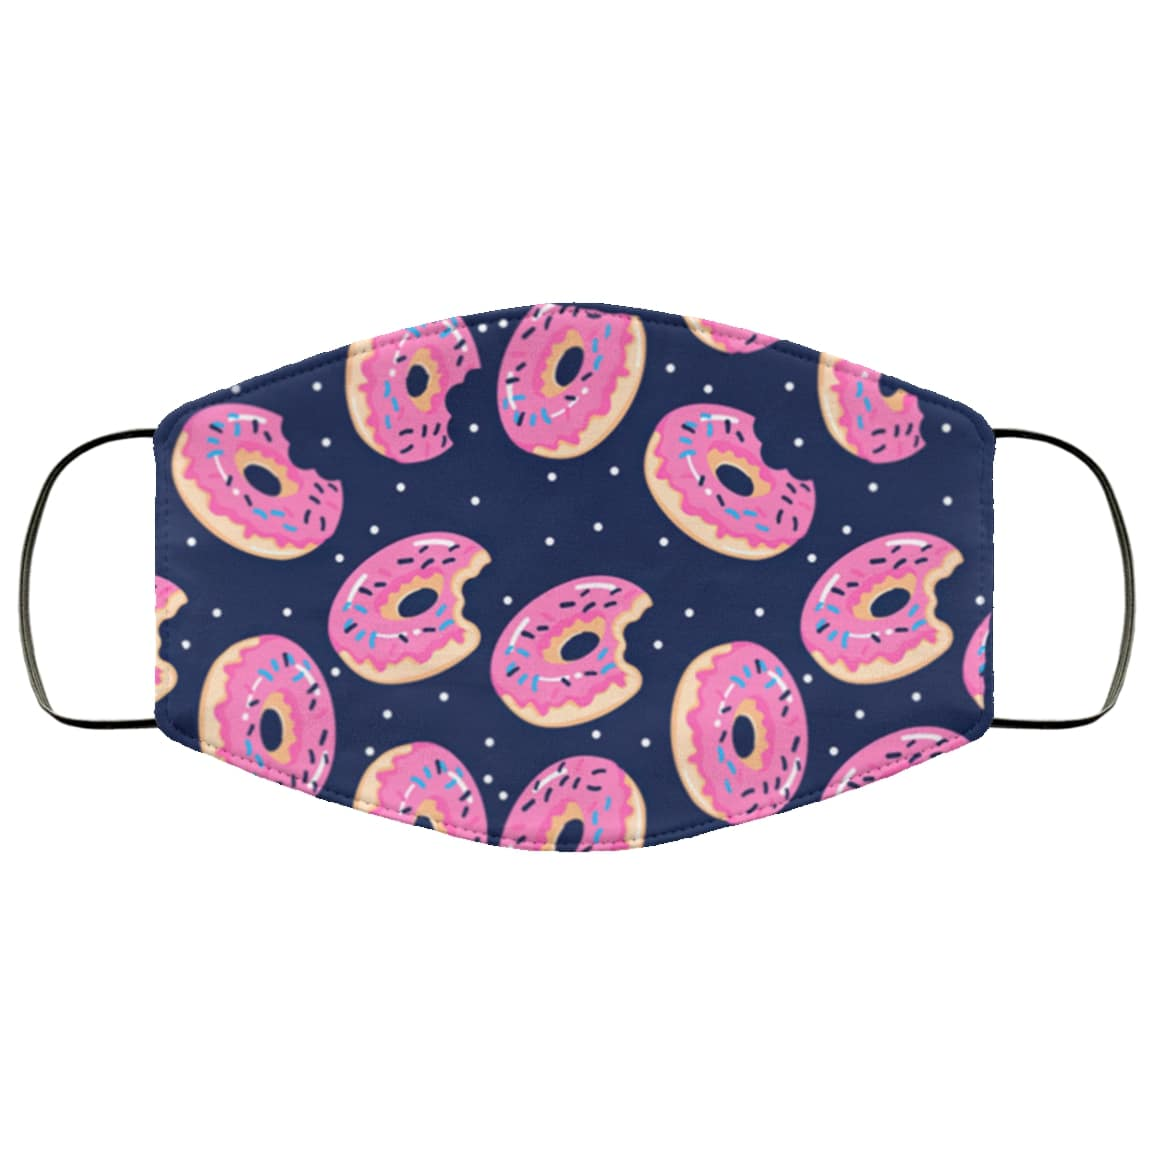 Pink donut all over printed face mask 3